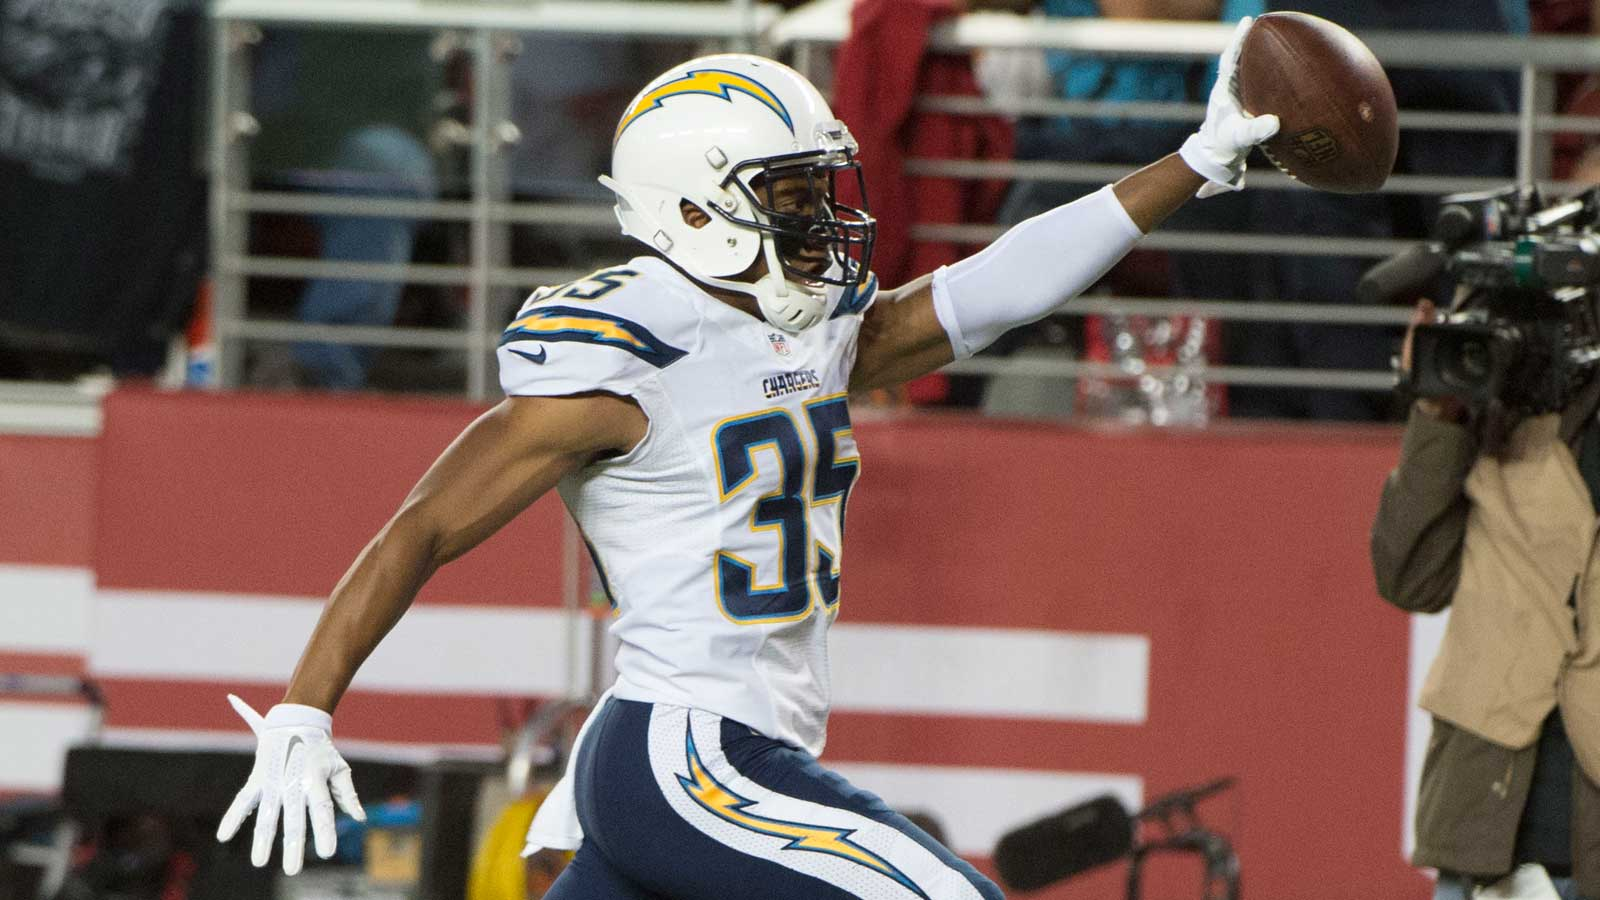 Chargers drop final preseason game 14-12 to 49ers